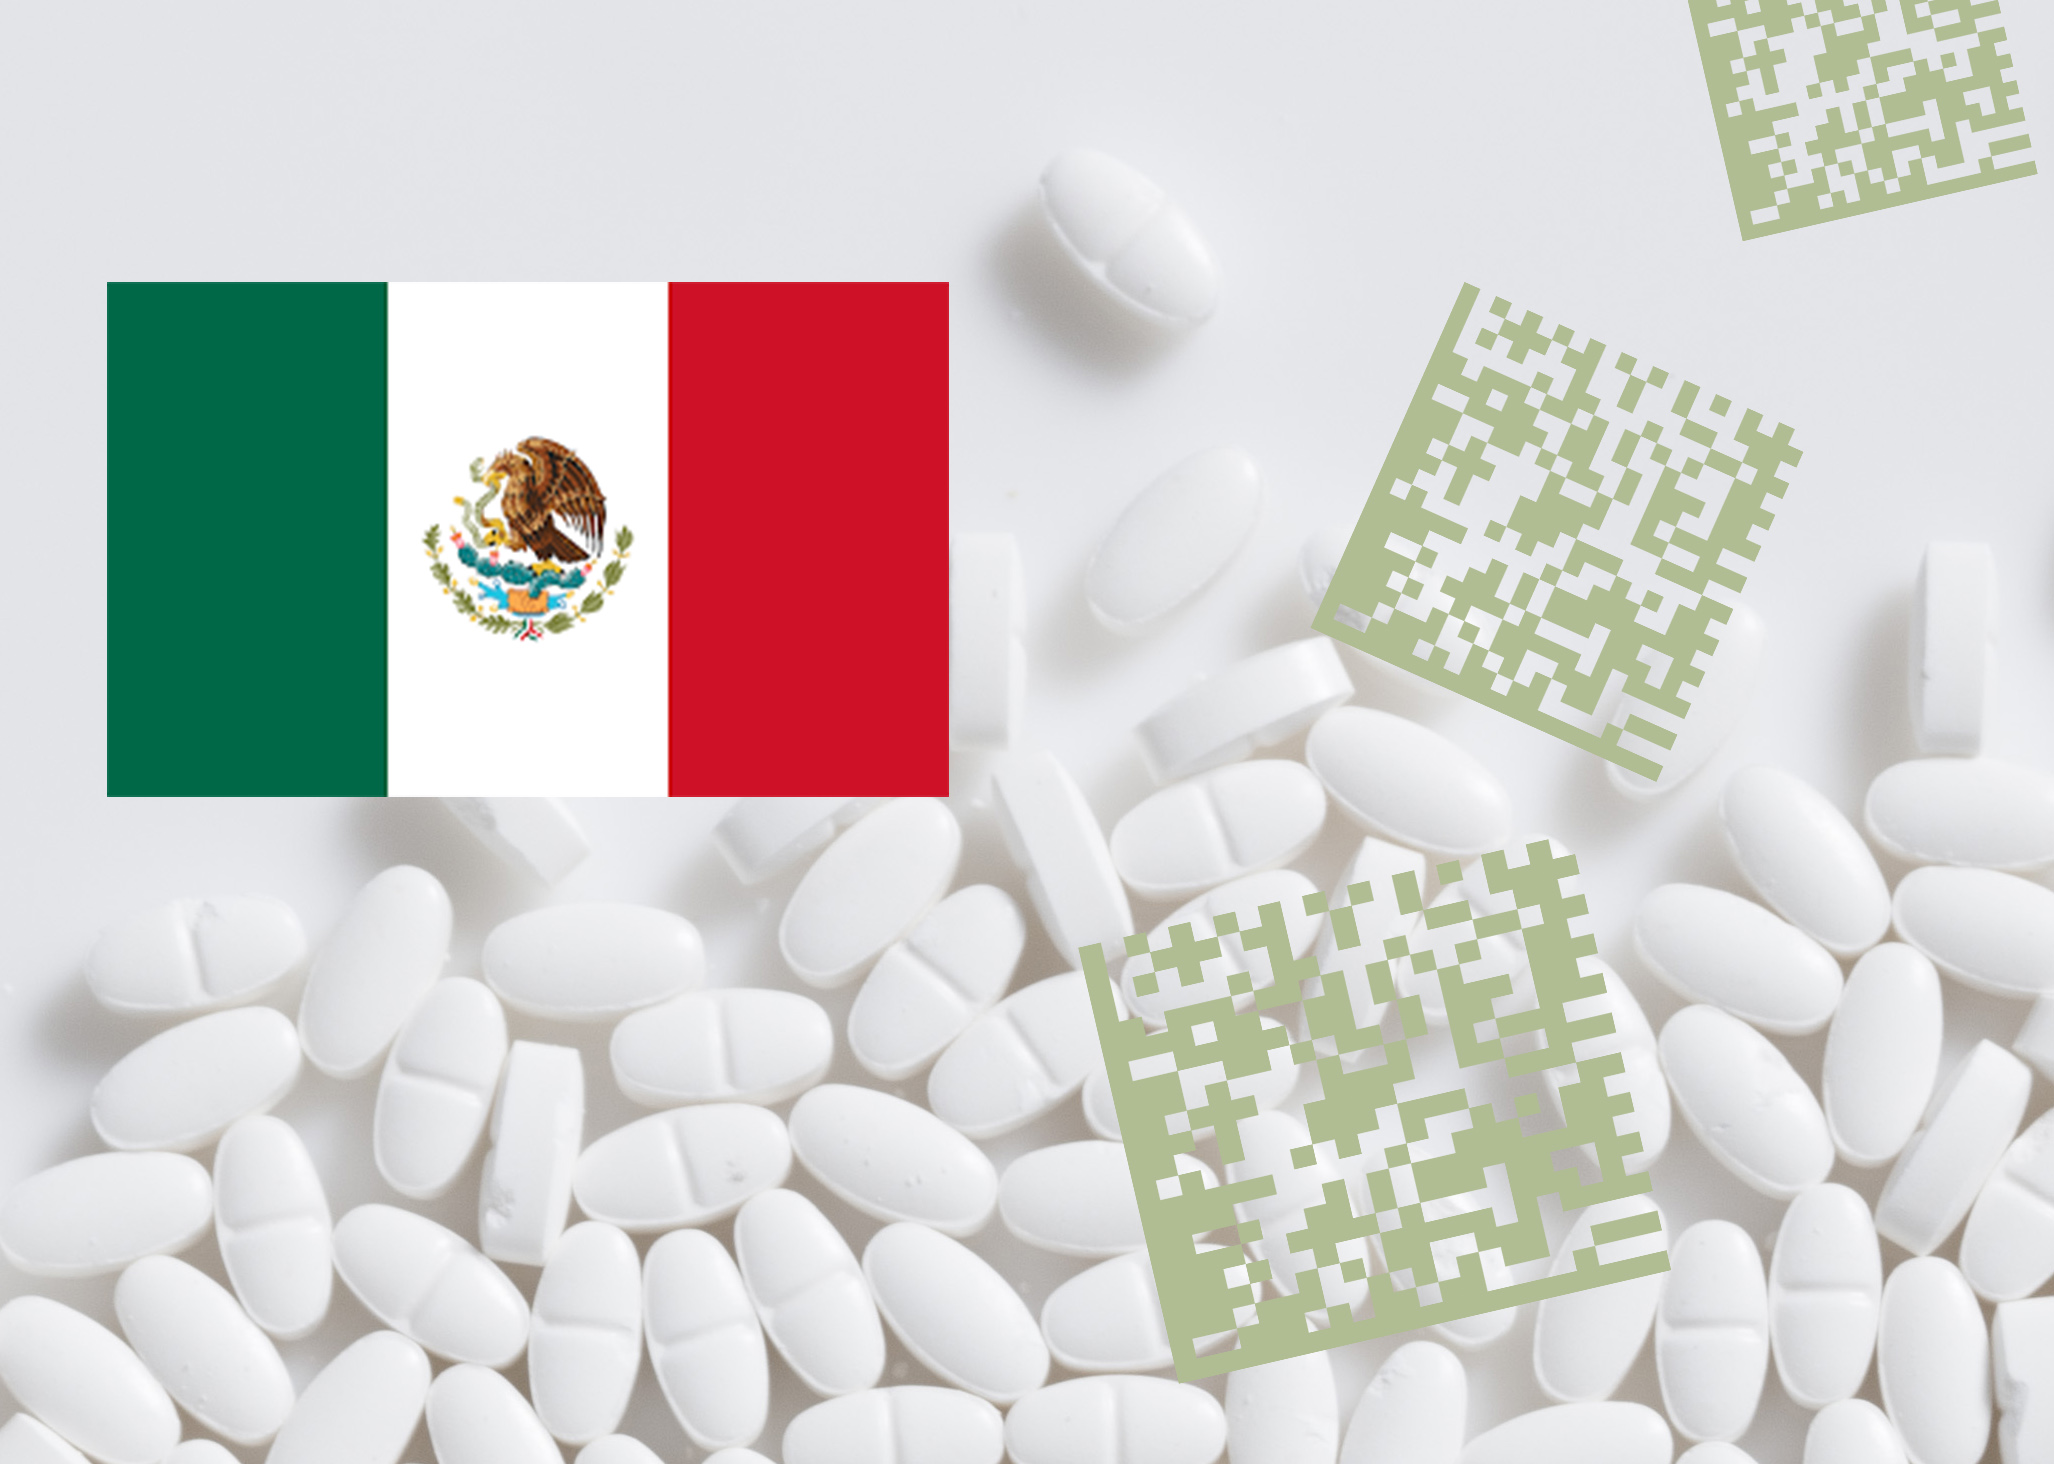 Mexico, charting the way against counterfeit medicines